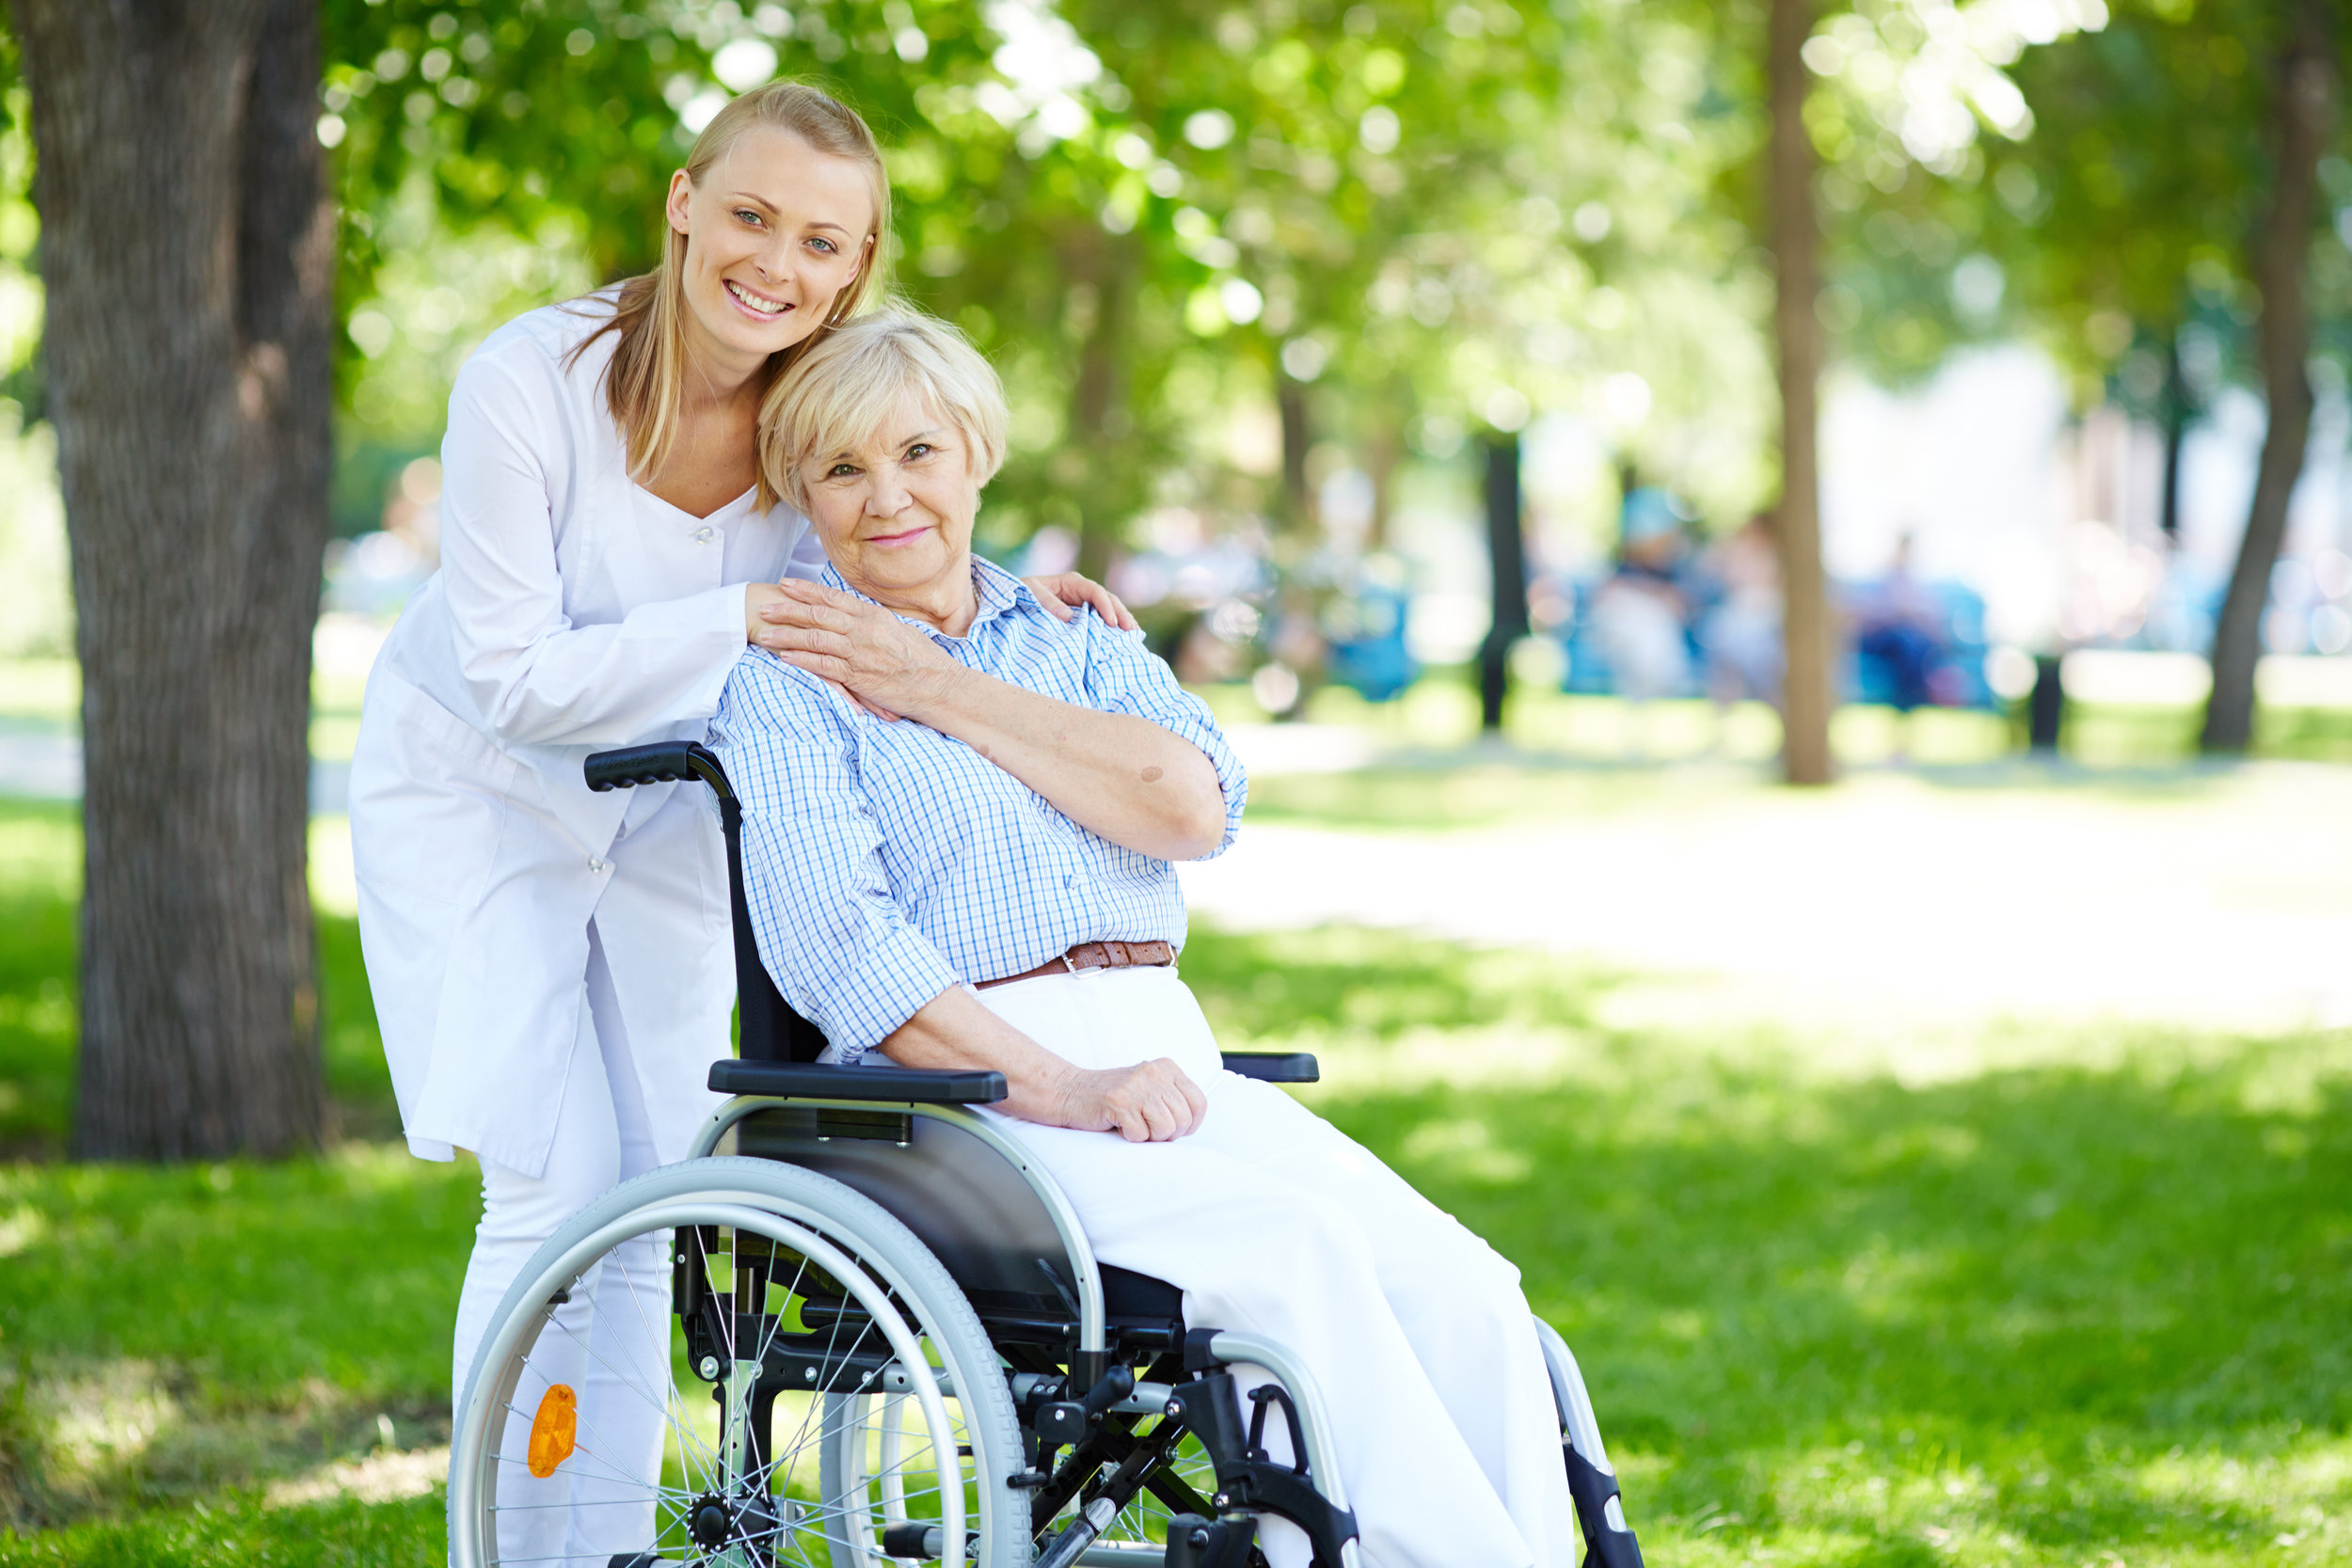 HOME HEALTH AIDE CERTIFICATION PROGRAM